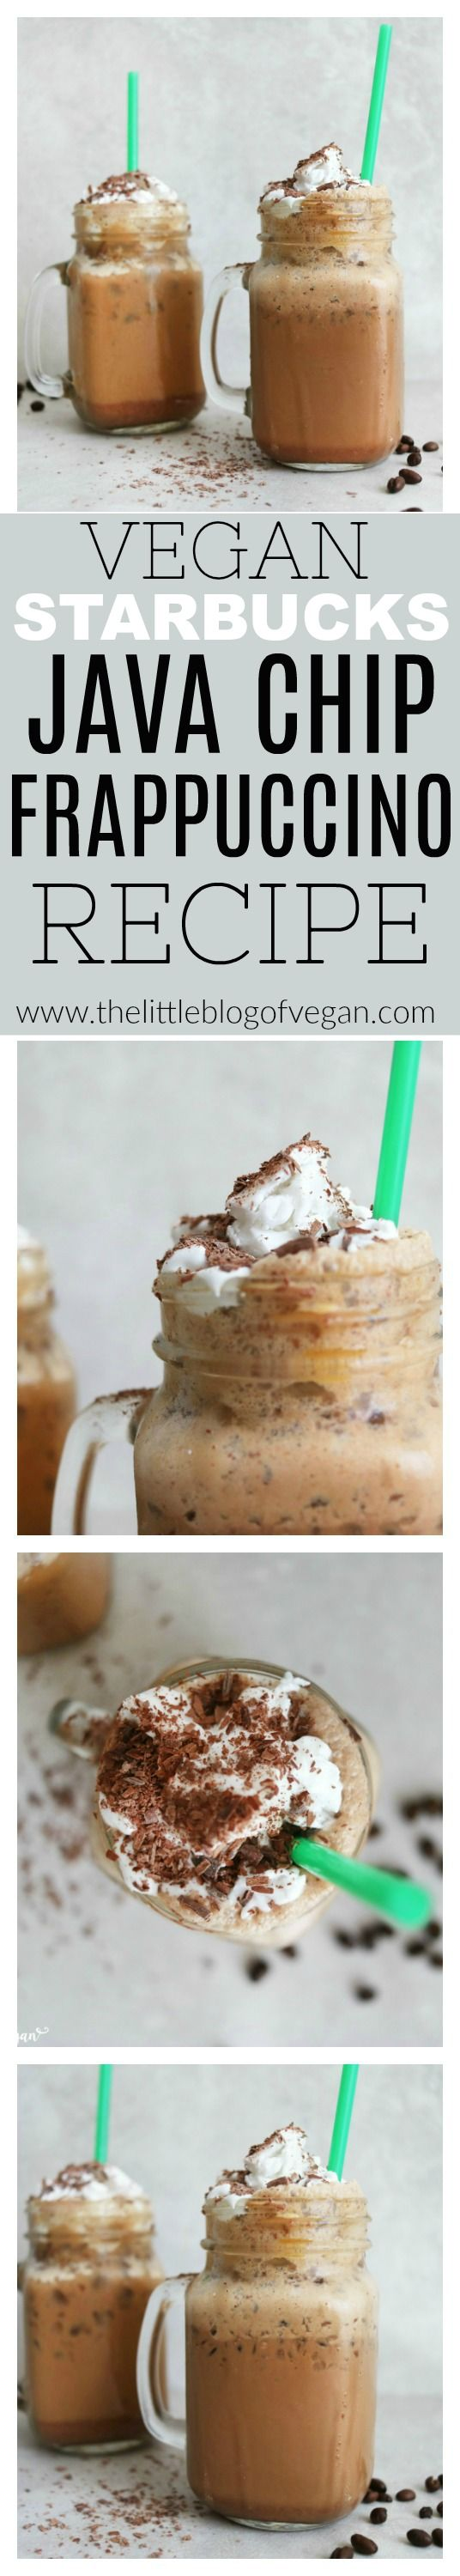 How to make a VEGAN Starbucks Java Chip Frappuccino!!! Absolutely delicious!